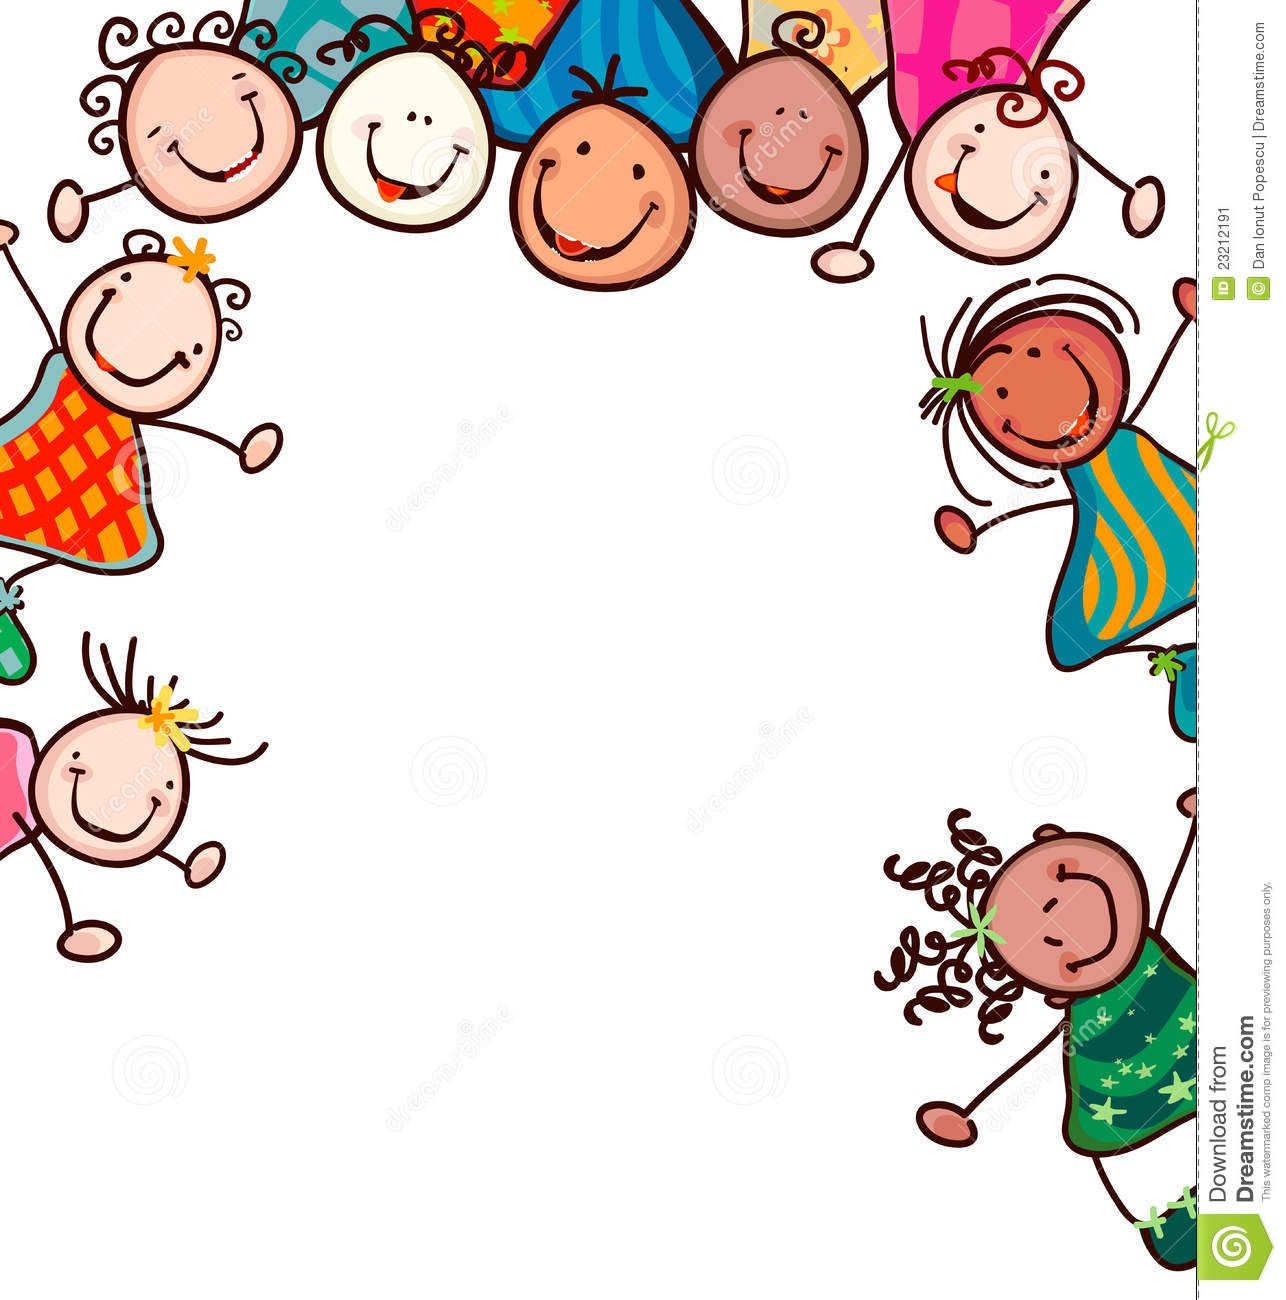 art clipart for kids at getdrawings com free for personal use art rh getdrawings com